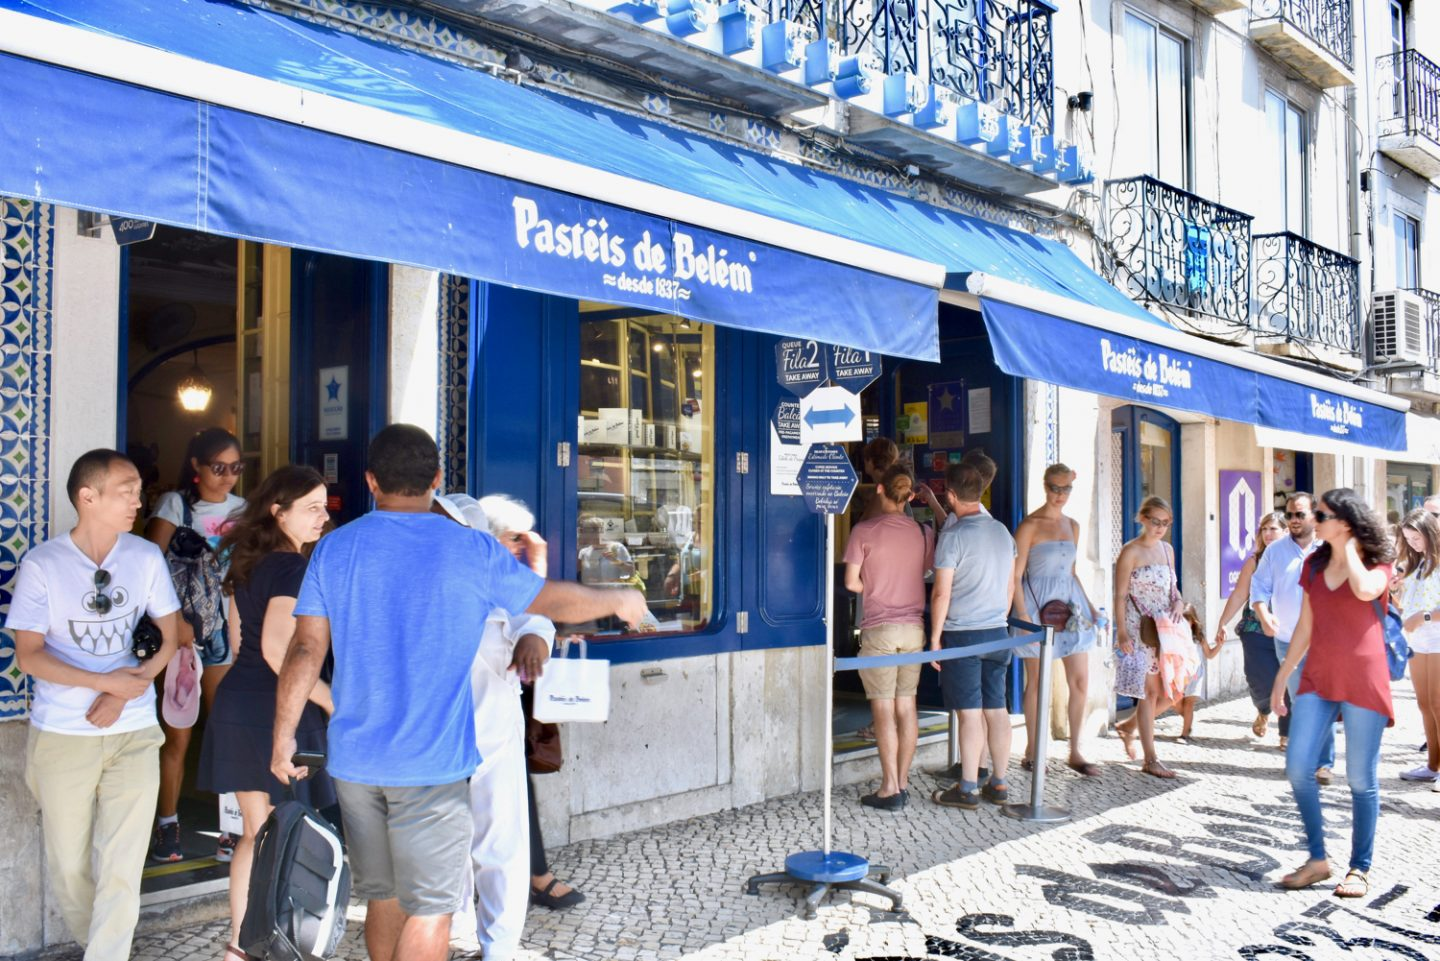 bairro alto lisbon food, lisbon food, miraduoros lisboa, eurovision lisbon, eurovision portugal 2018, gastrogays lisbon, irish travel blogger, lisbon food blog travel, lisbon travel blog, restaurants lisbon food, travel food lisbon, travel tips lisbon